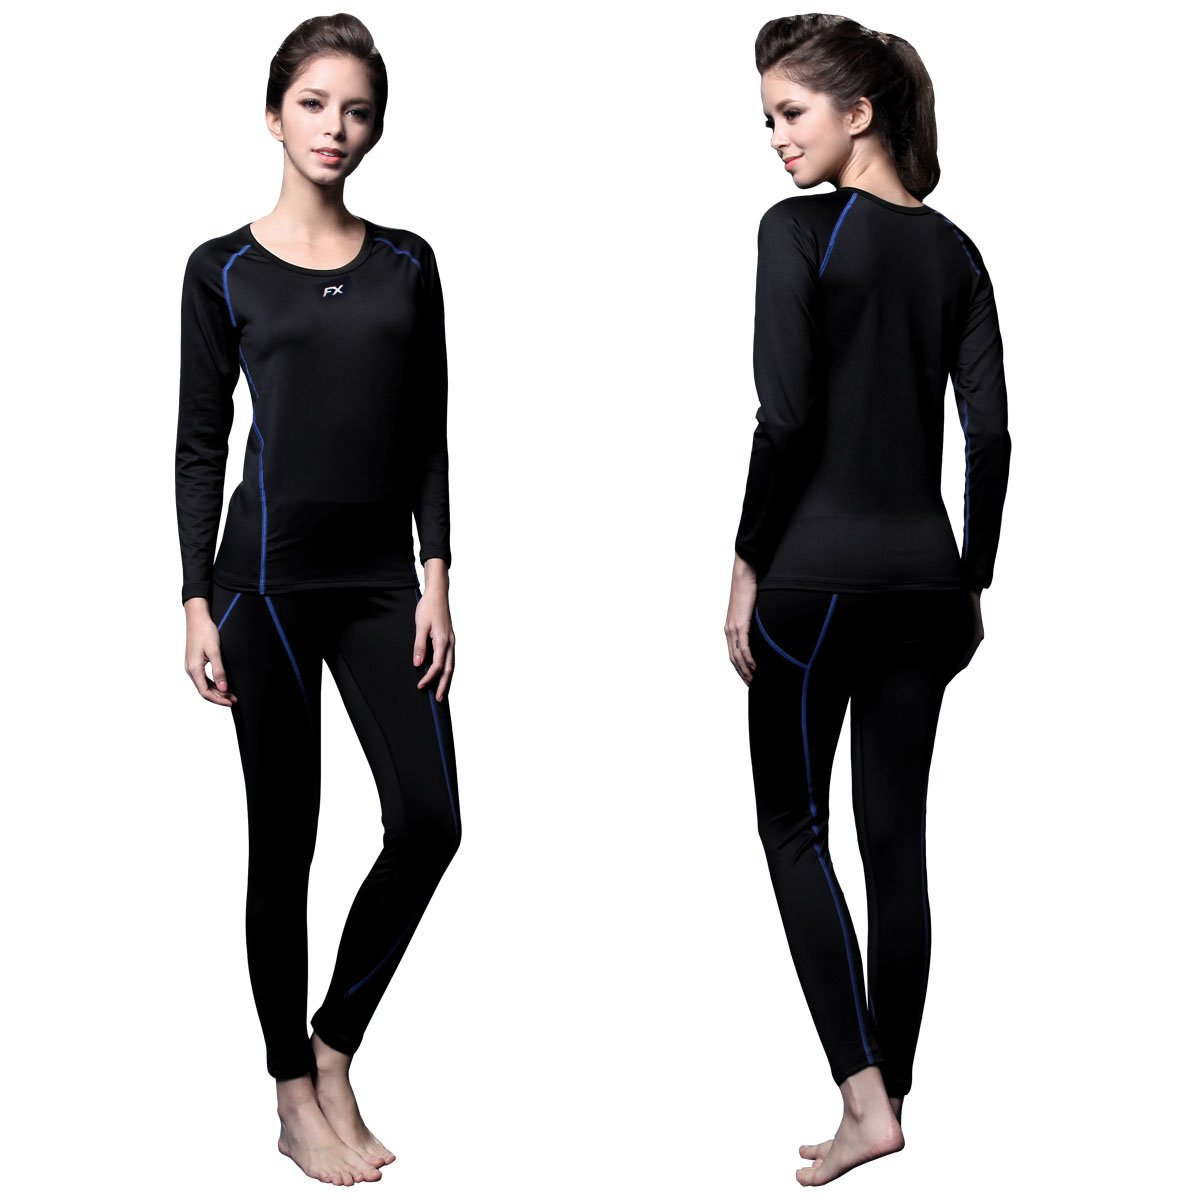 FITEXTREME Womens MAXHEAT Fleece Long Johns Thermal Underwear Set Black L